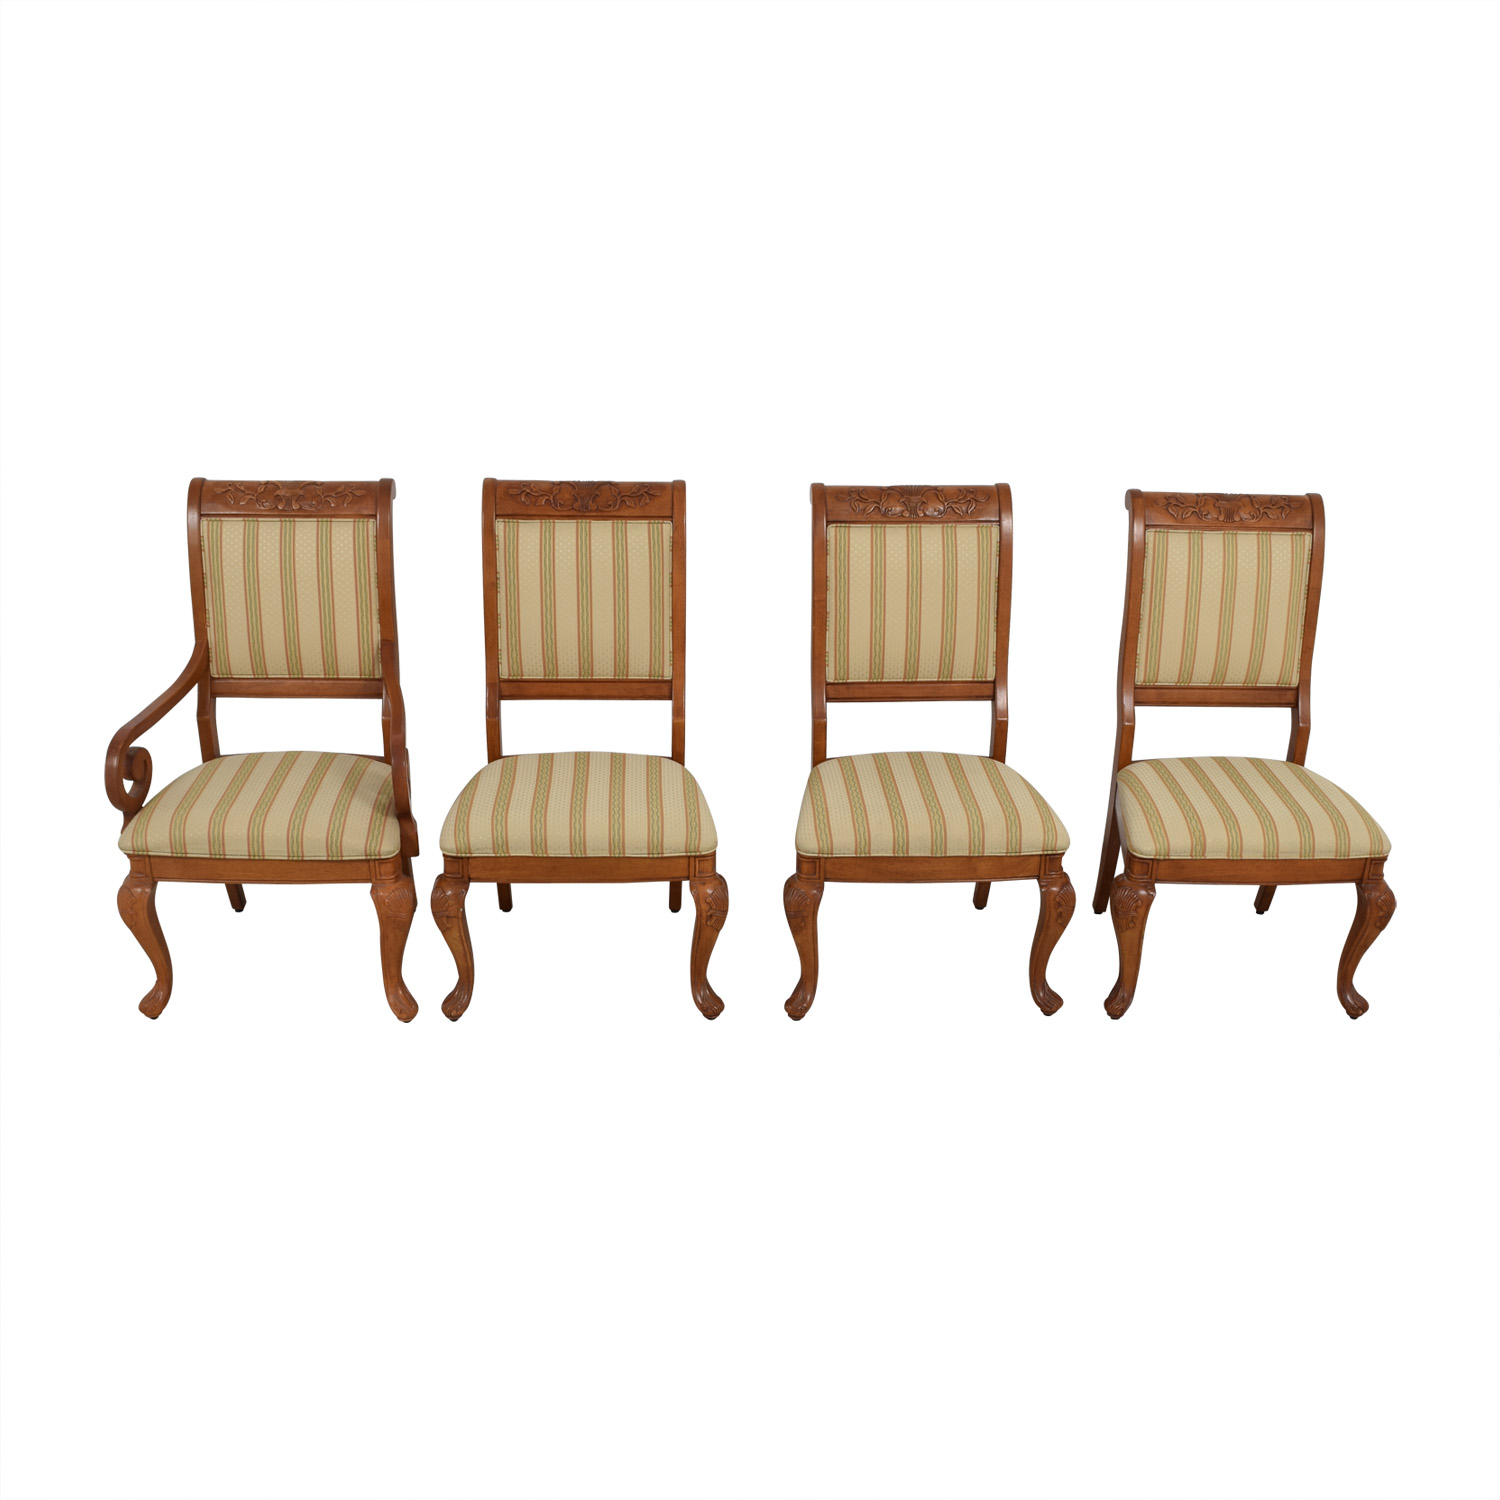 Furniture Masters Striped Upholstered Carved Dining Chairs / Chairs